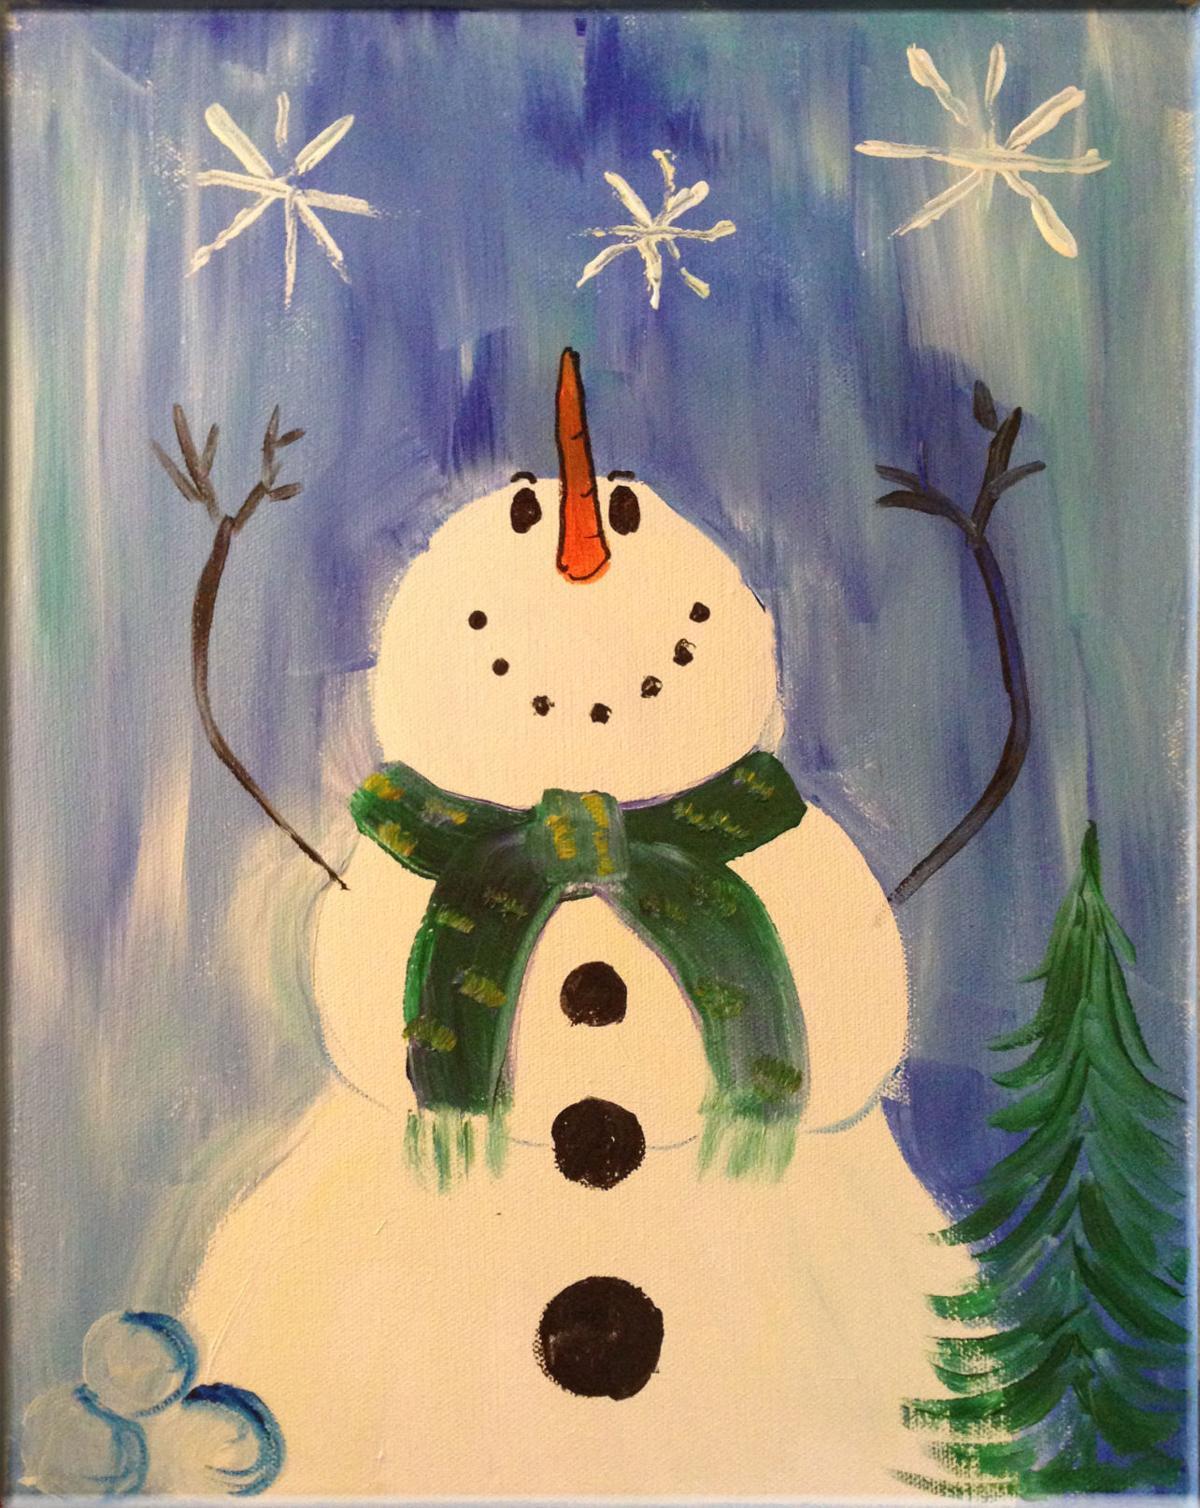 Kids and Canvas class is at Clear Lake Arts Center | Local ...